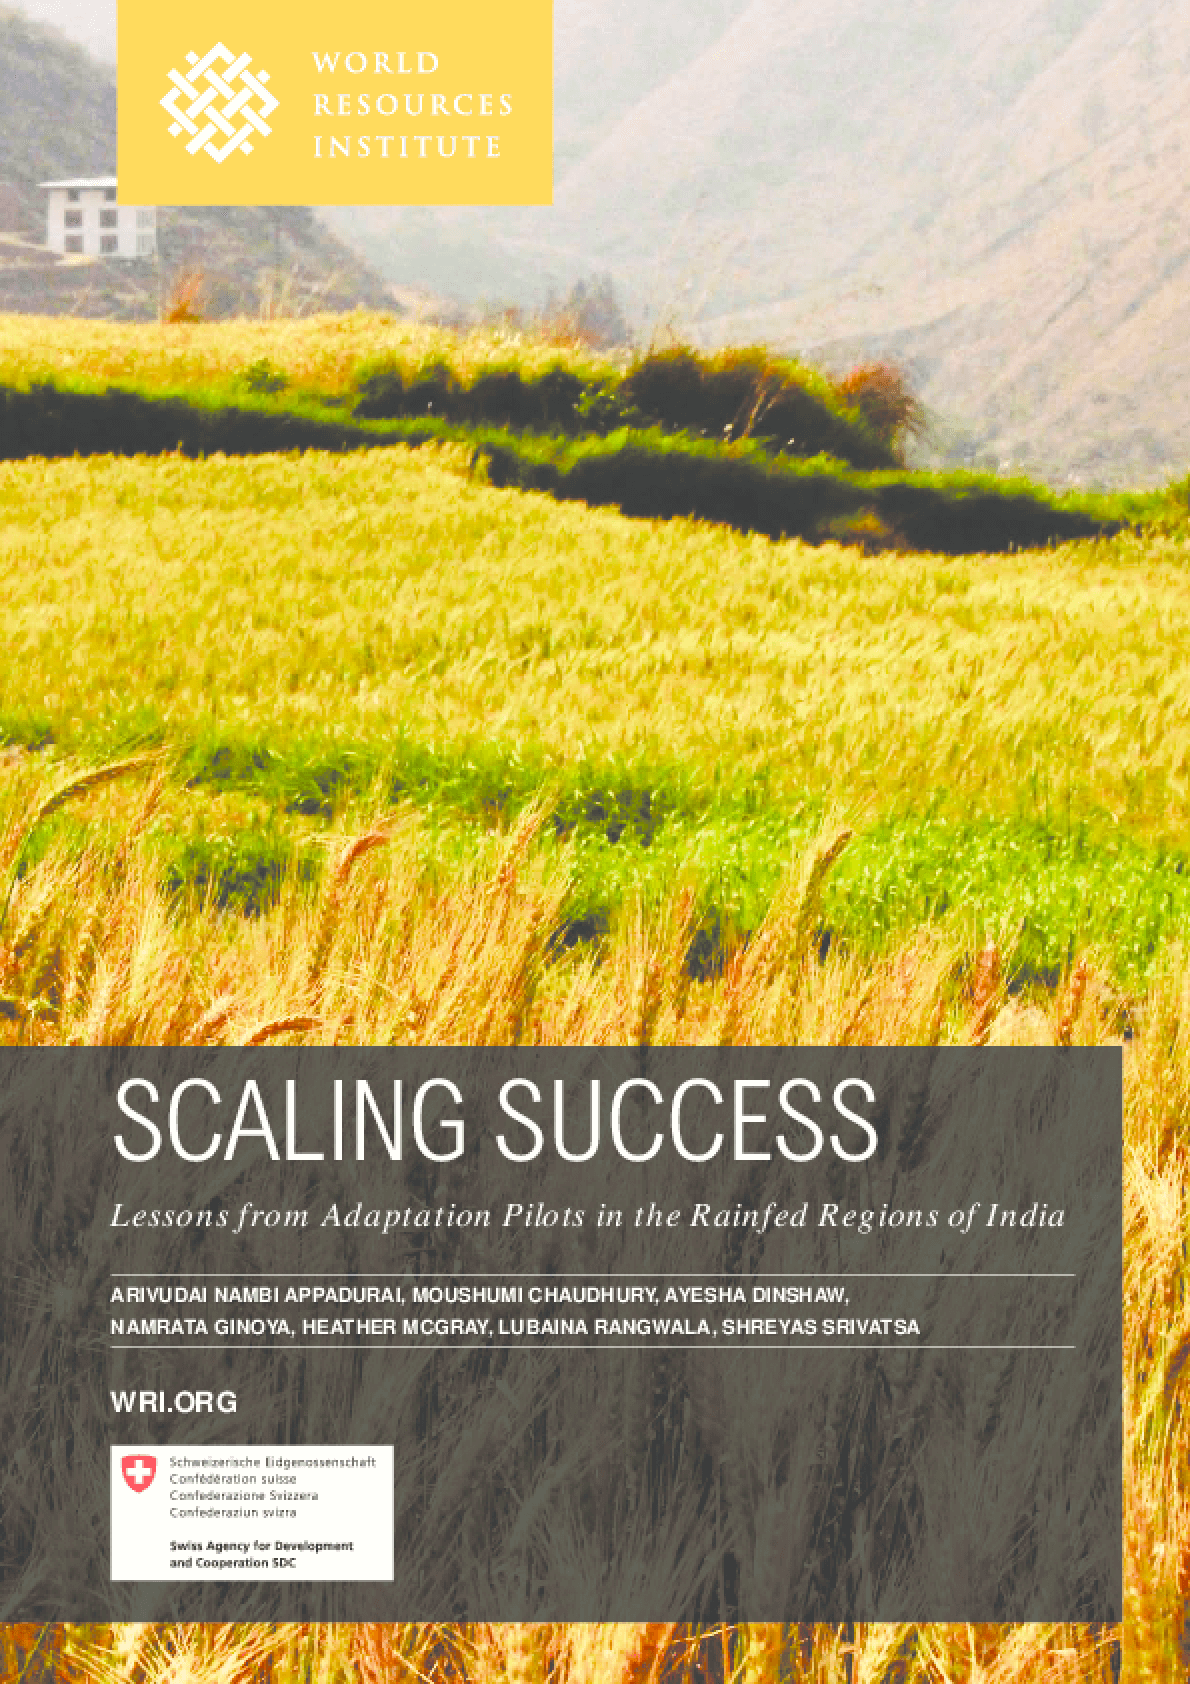 Scaling Success: Lessons from Adaptation Pilots in the Rainfed Regions of India